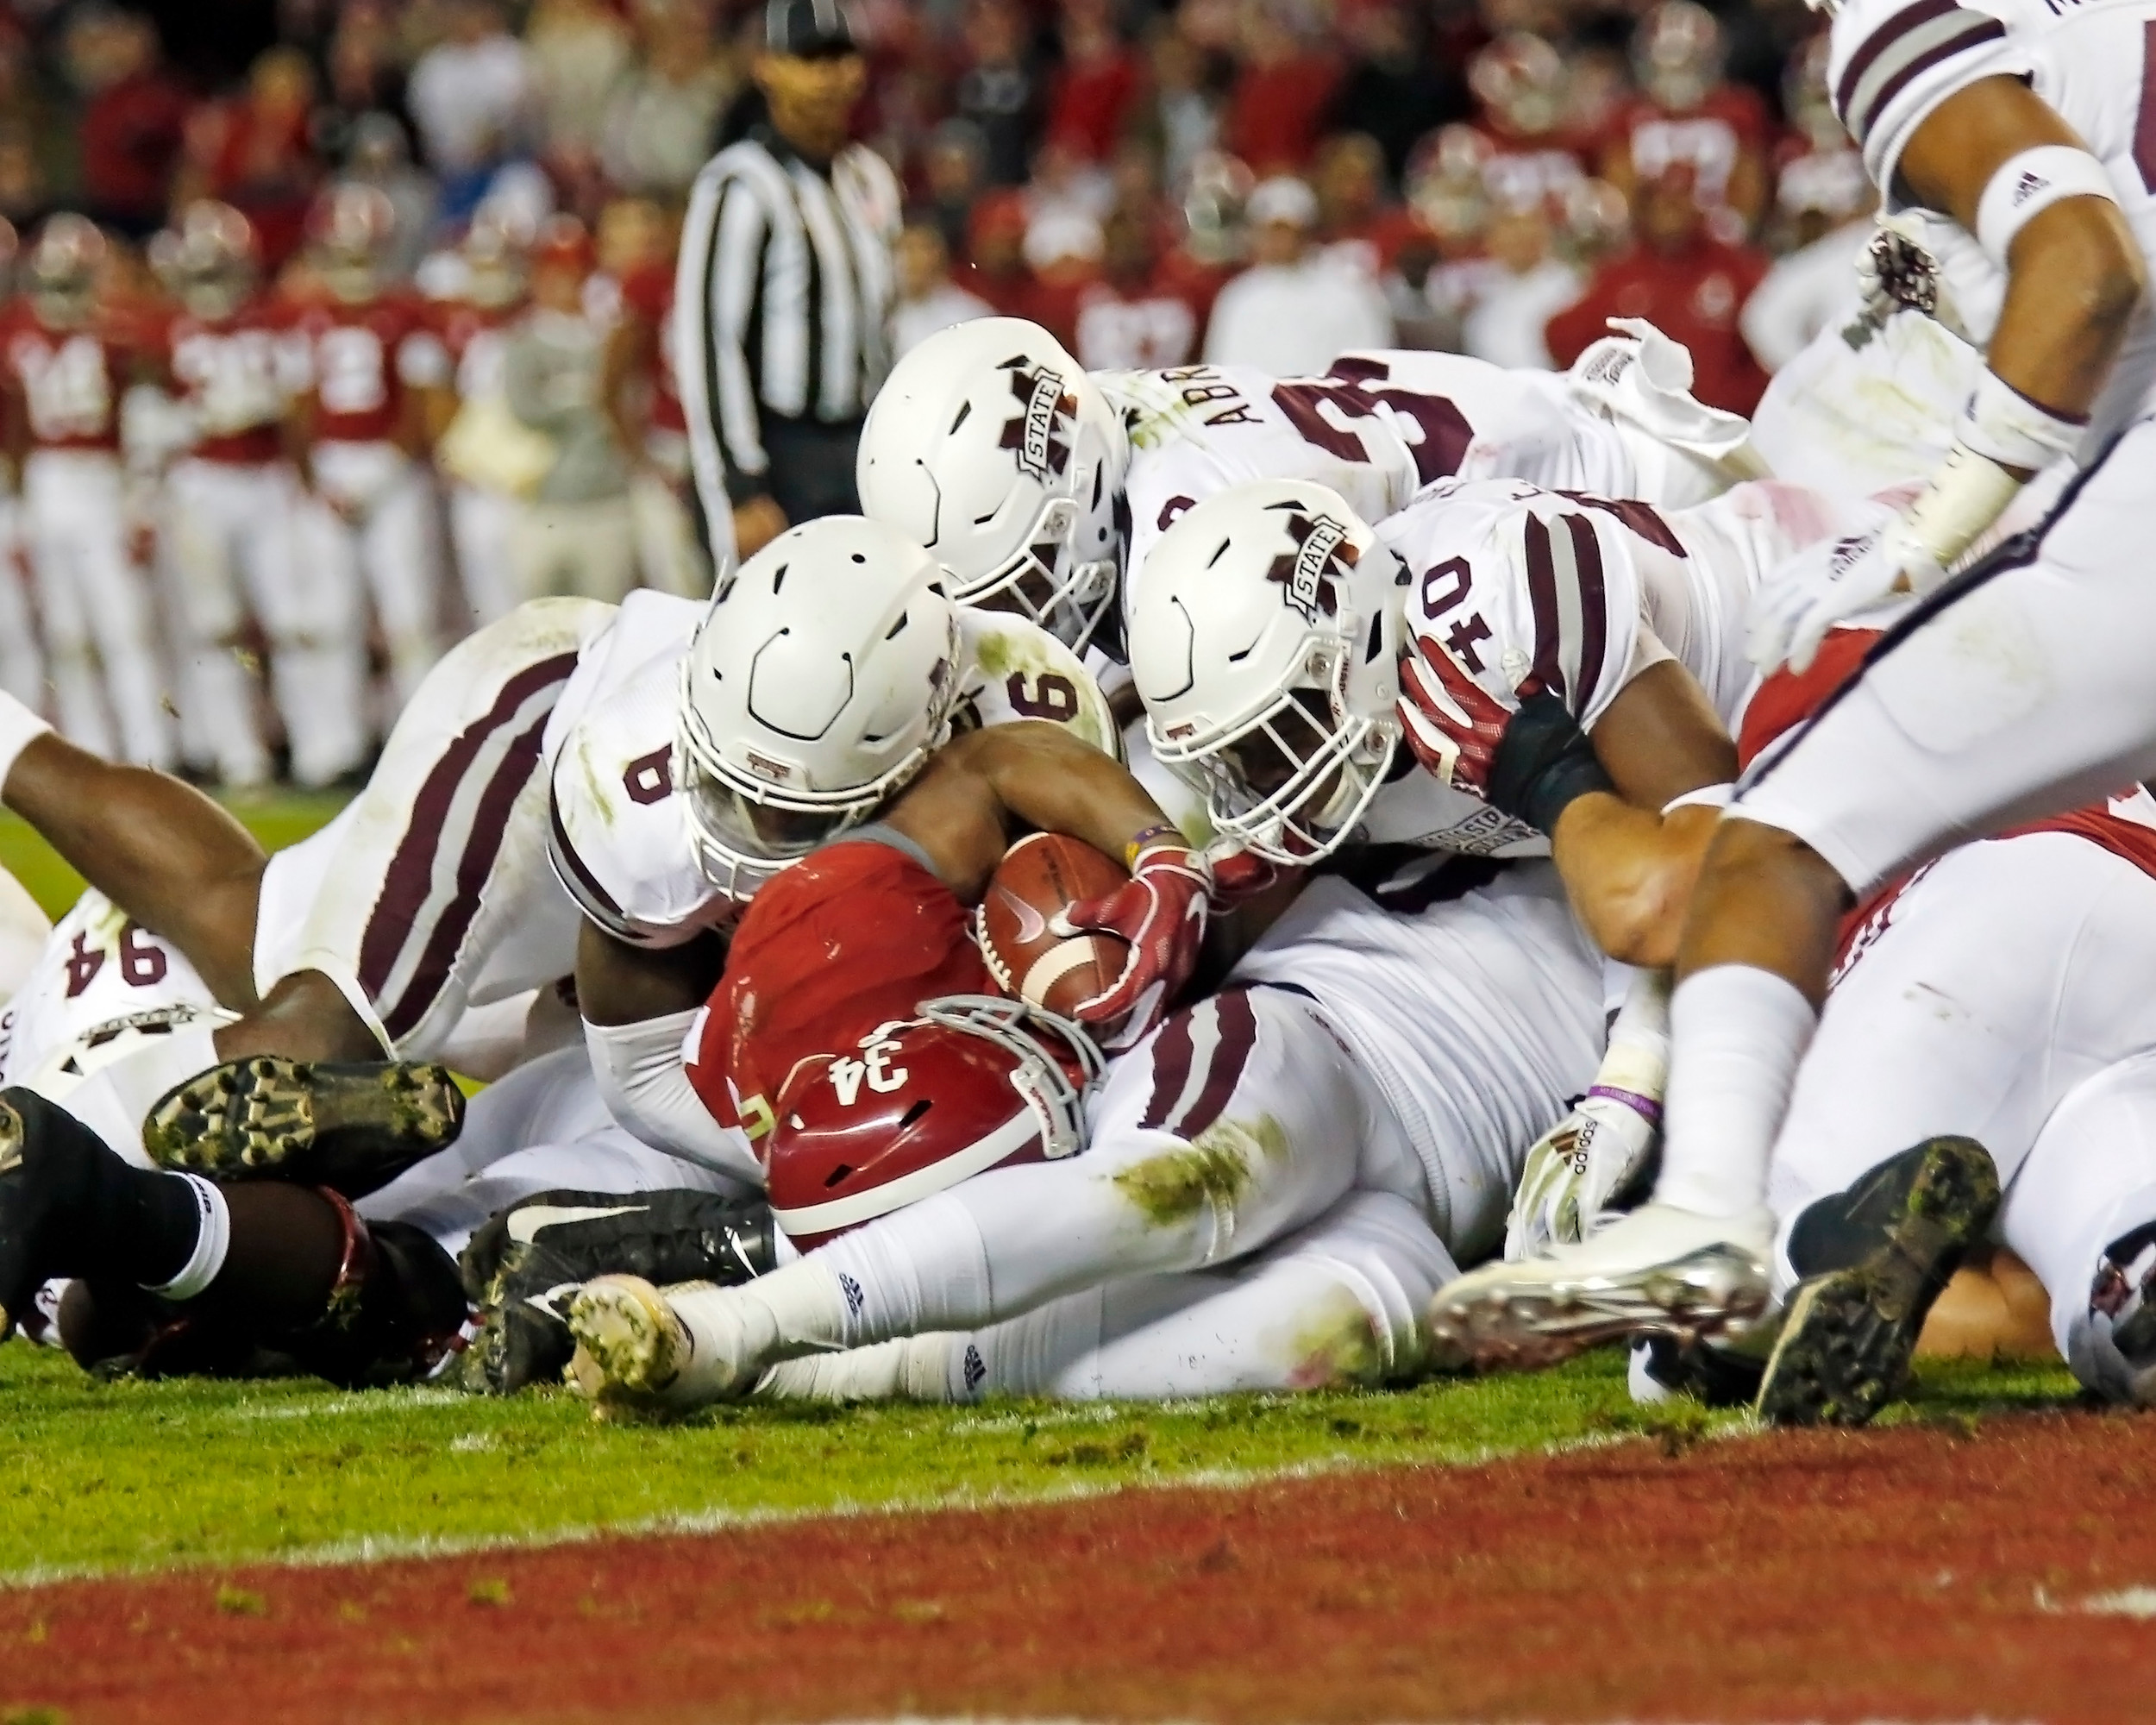 The Mississippi State Bulldogs' defense makes a big stop on Alabama Crimson Tide running back Damien Harris (34) during the second half of the game between Mississippi State and the University of Alabama at Bryant-Denny Stadium in Tuscaloosa, Al. Credit: Jason Clark / Daily Mountain Eagle